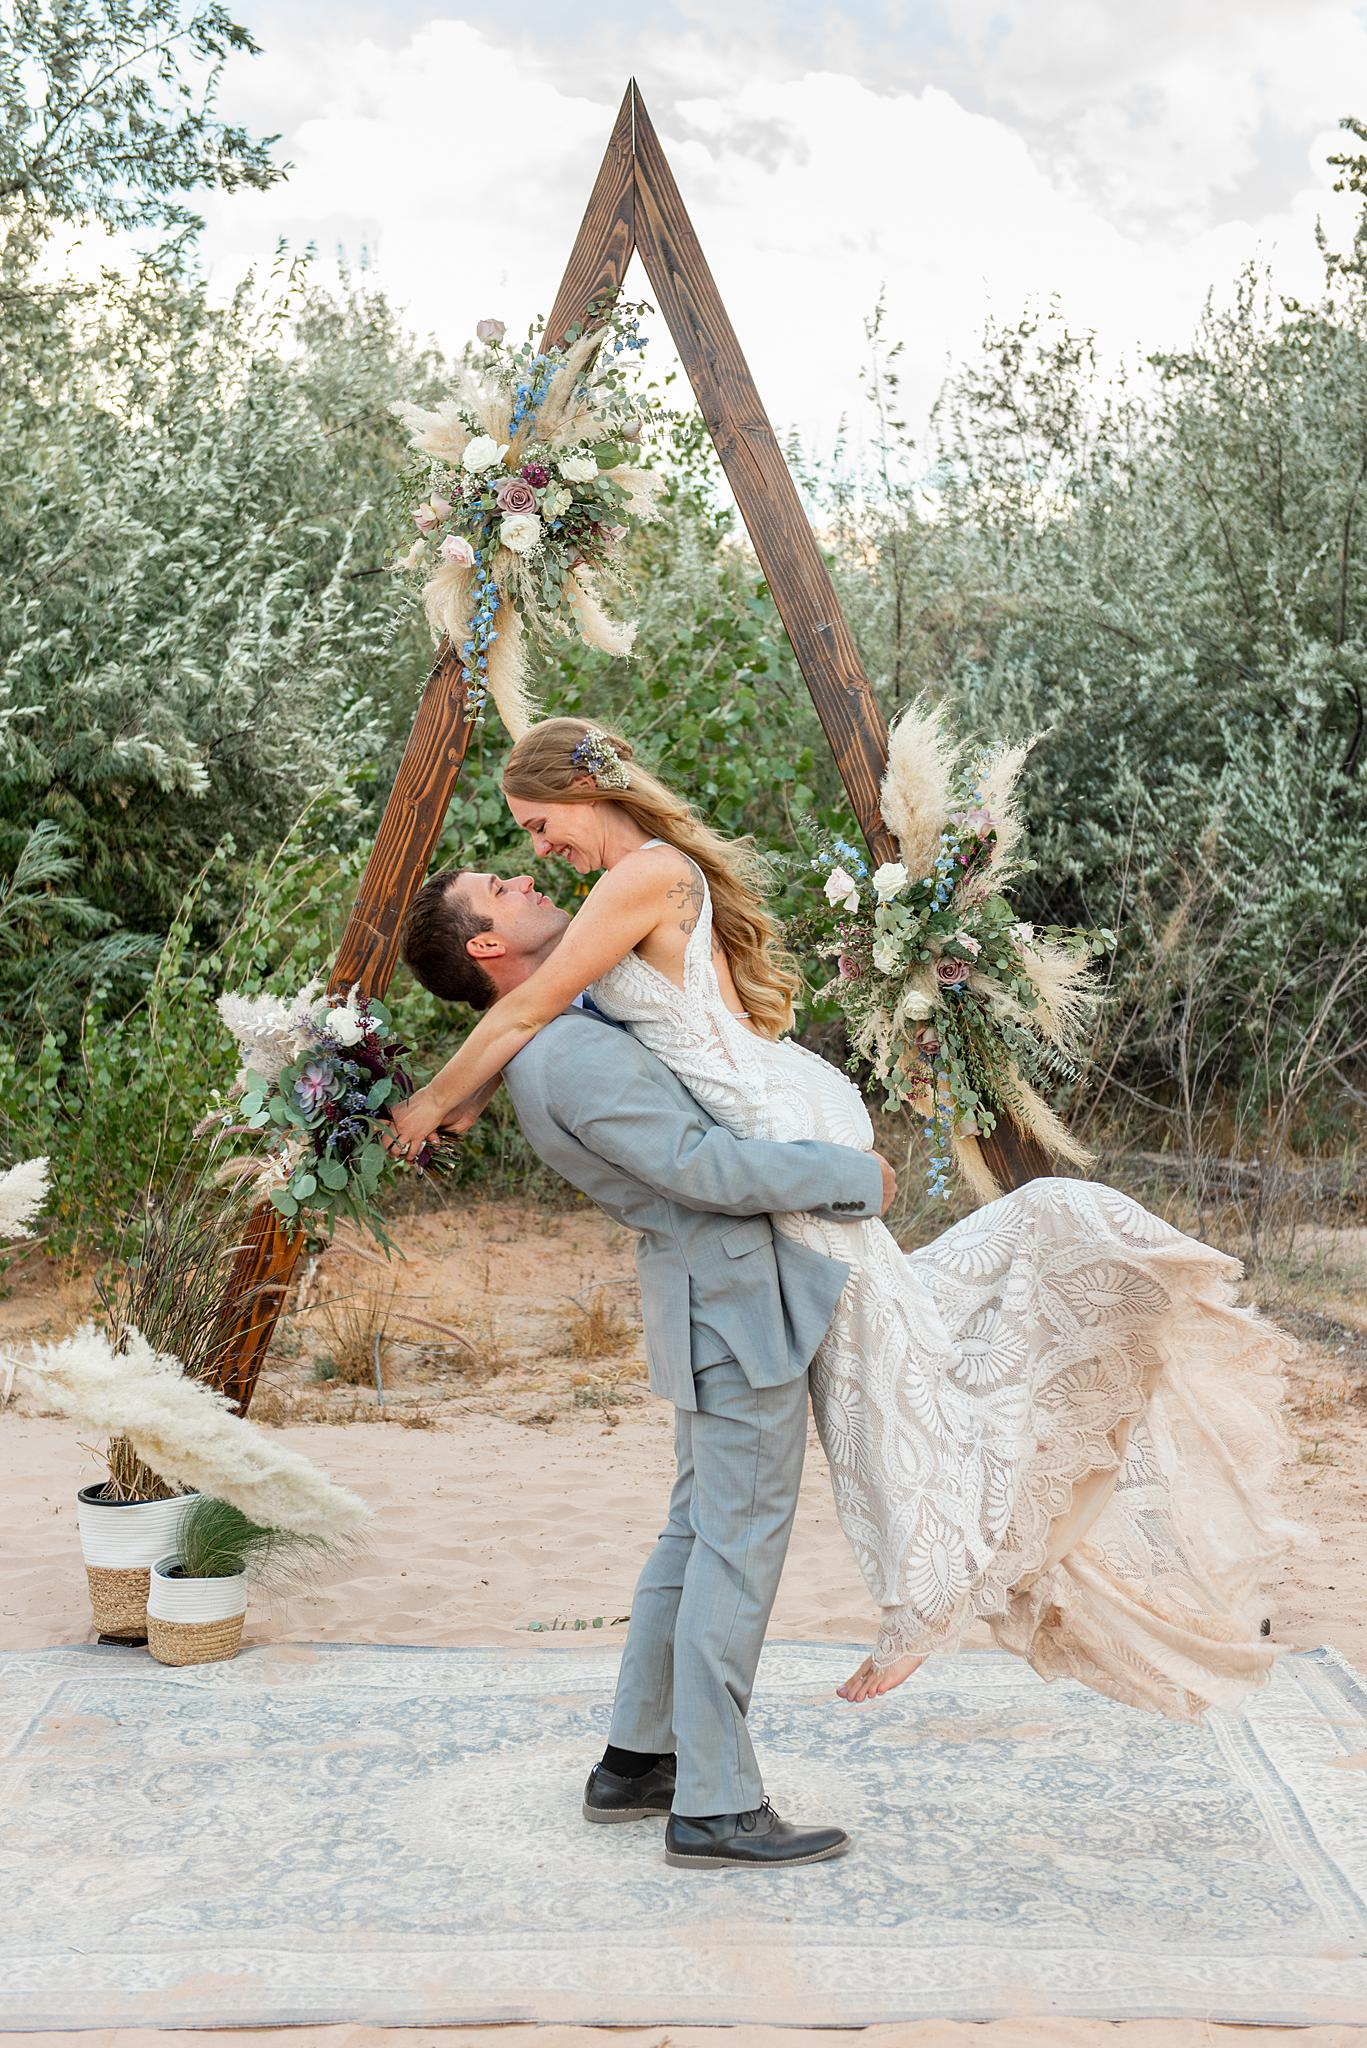 Zion National Park Wedding Planner in Southern Utah Wedding Planner